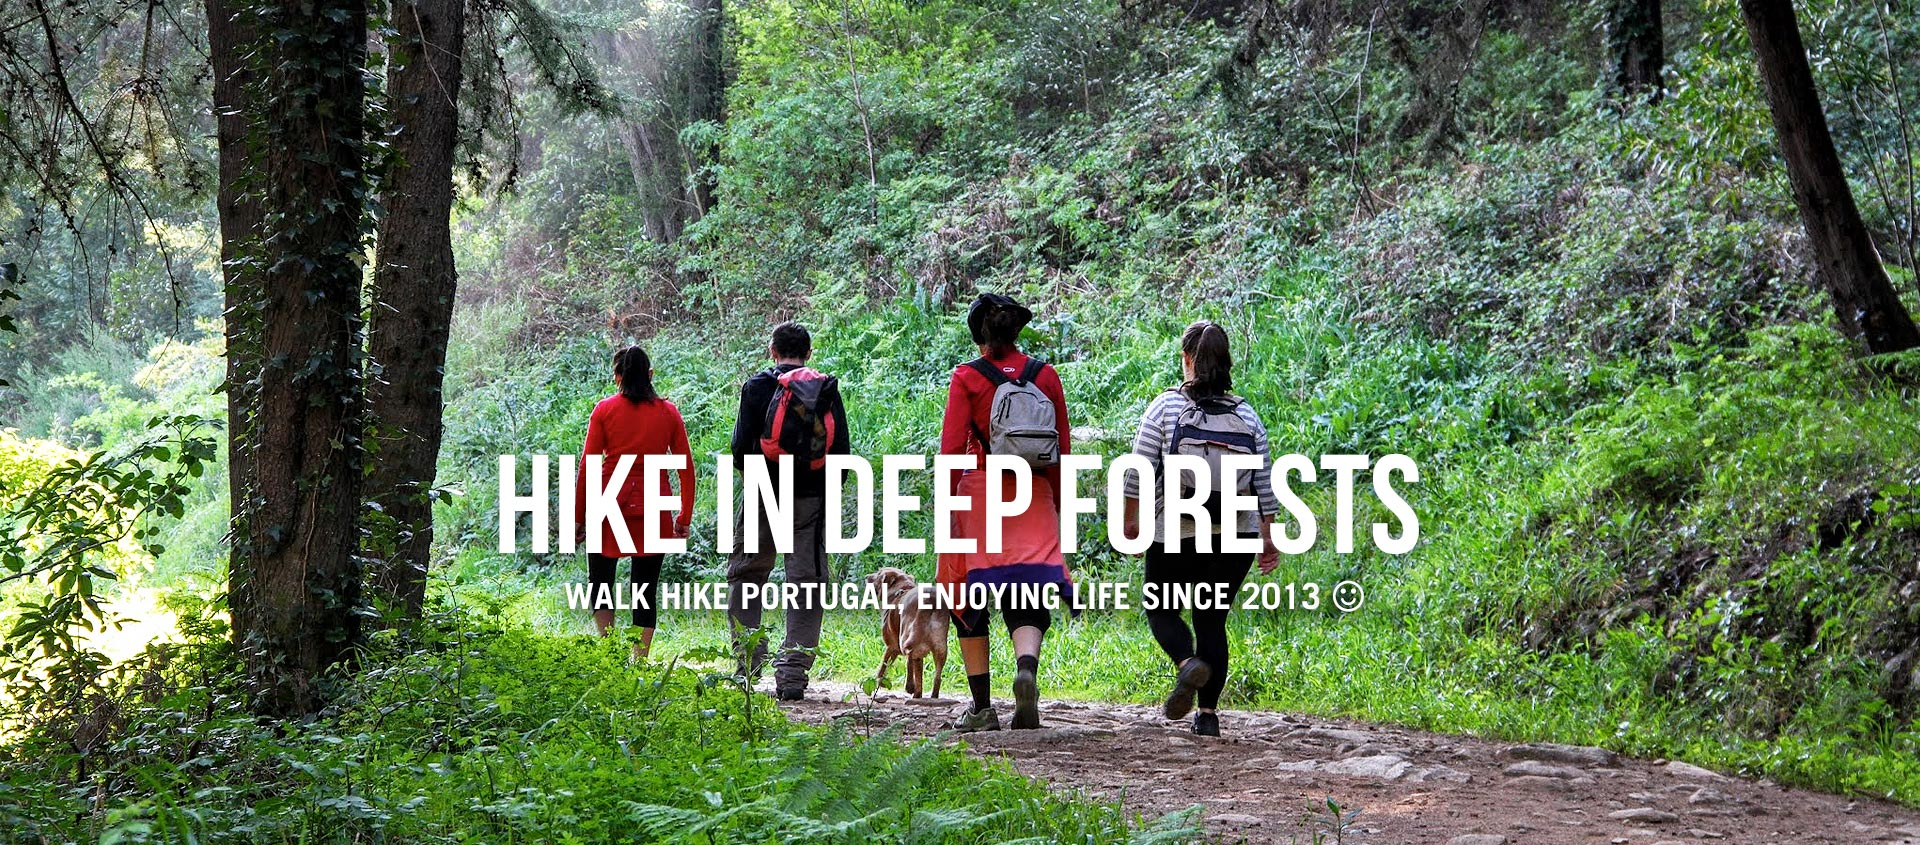 HIKE IN DEEP FORESTS